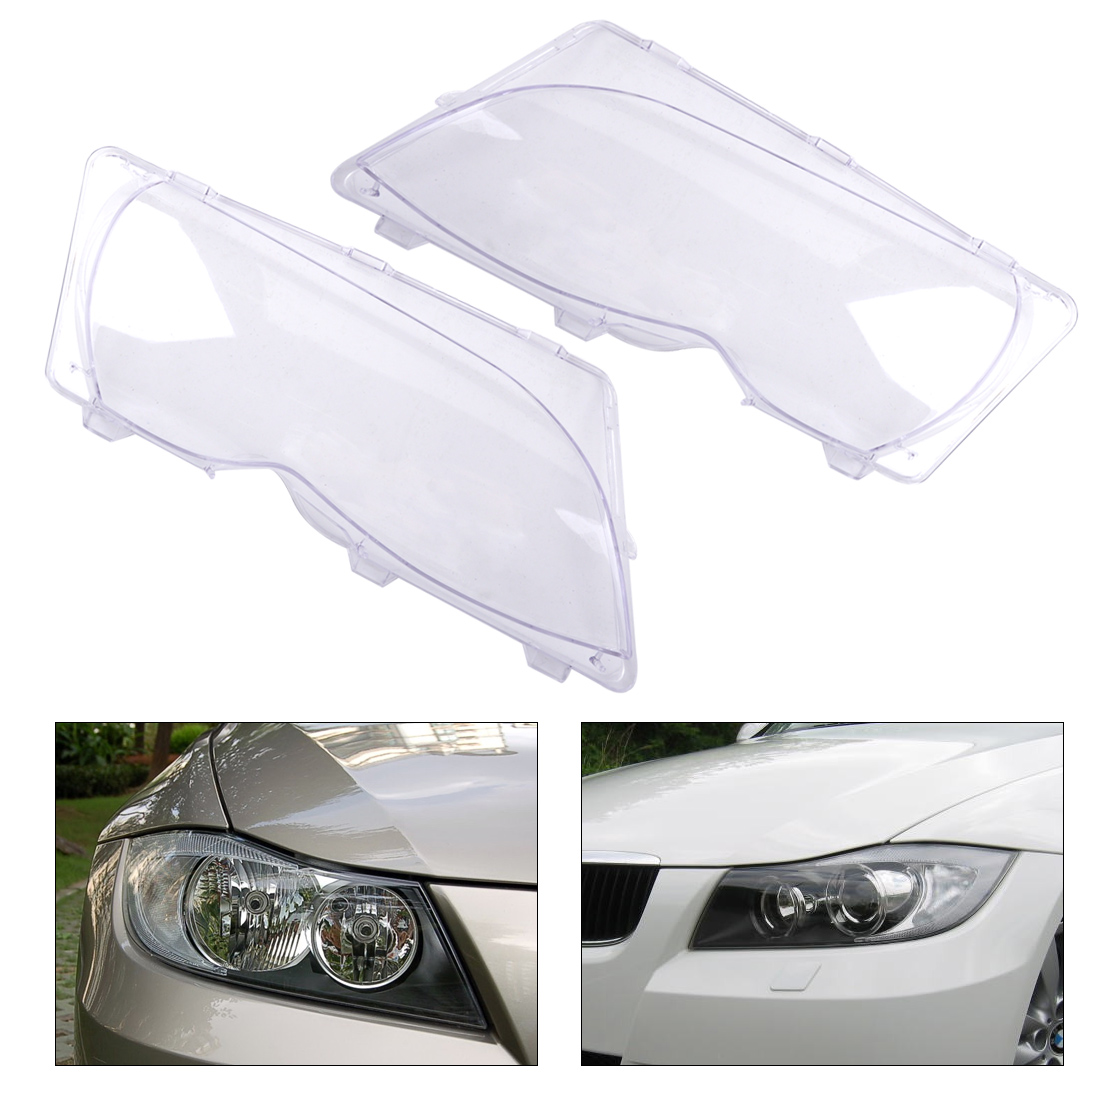 CITALL 63126924045 63126924046 2pcs Clear Headlight Lamp Lens Cover for BMW 3 Series E46 325i 325xi